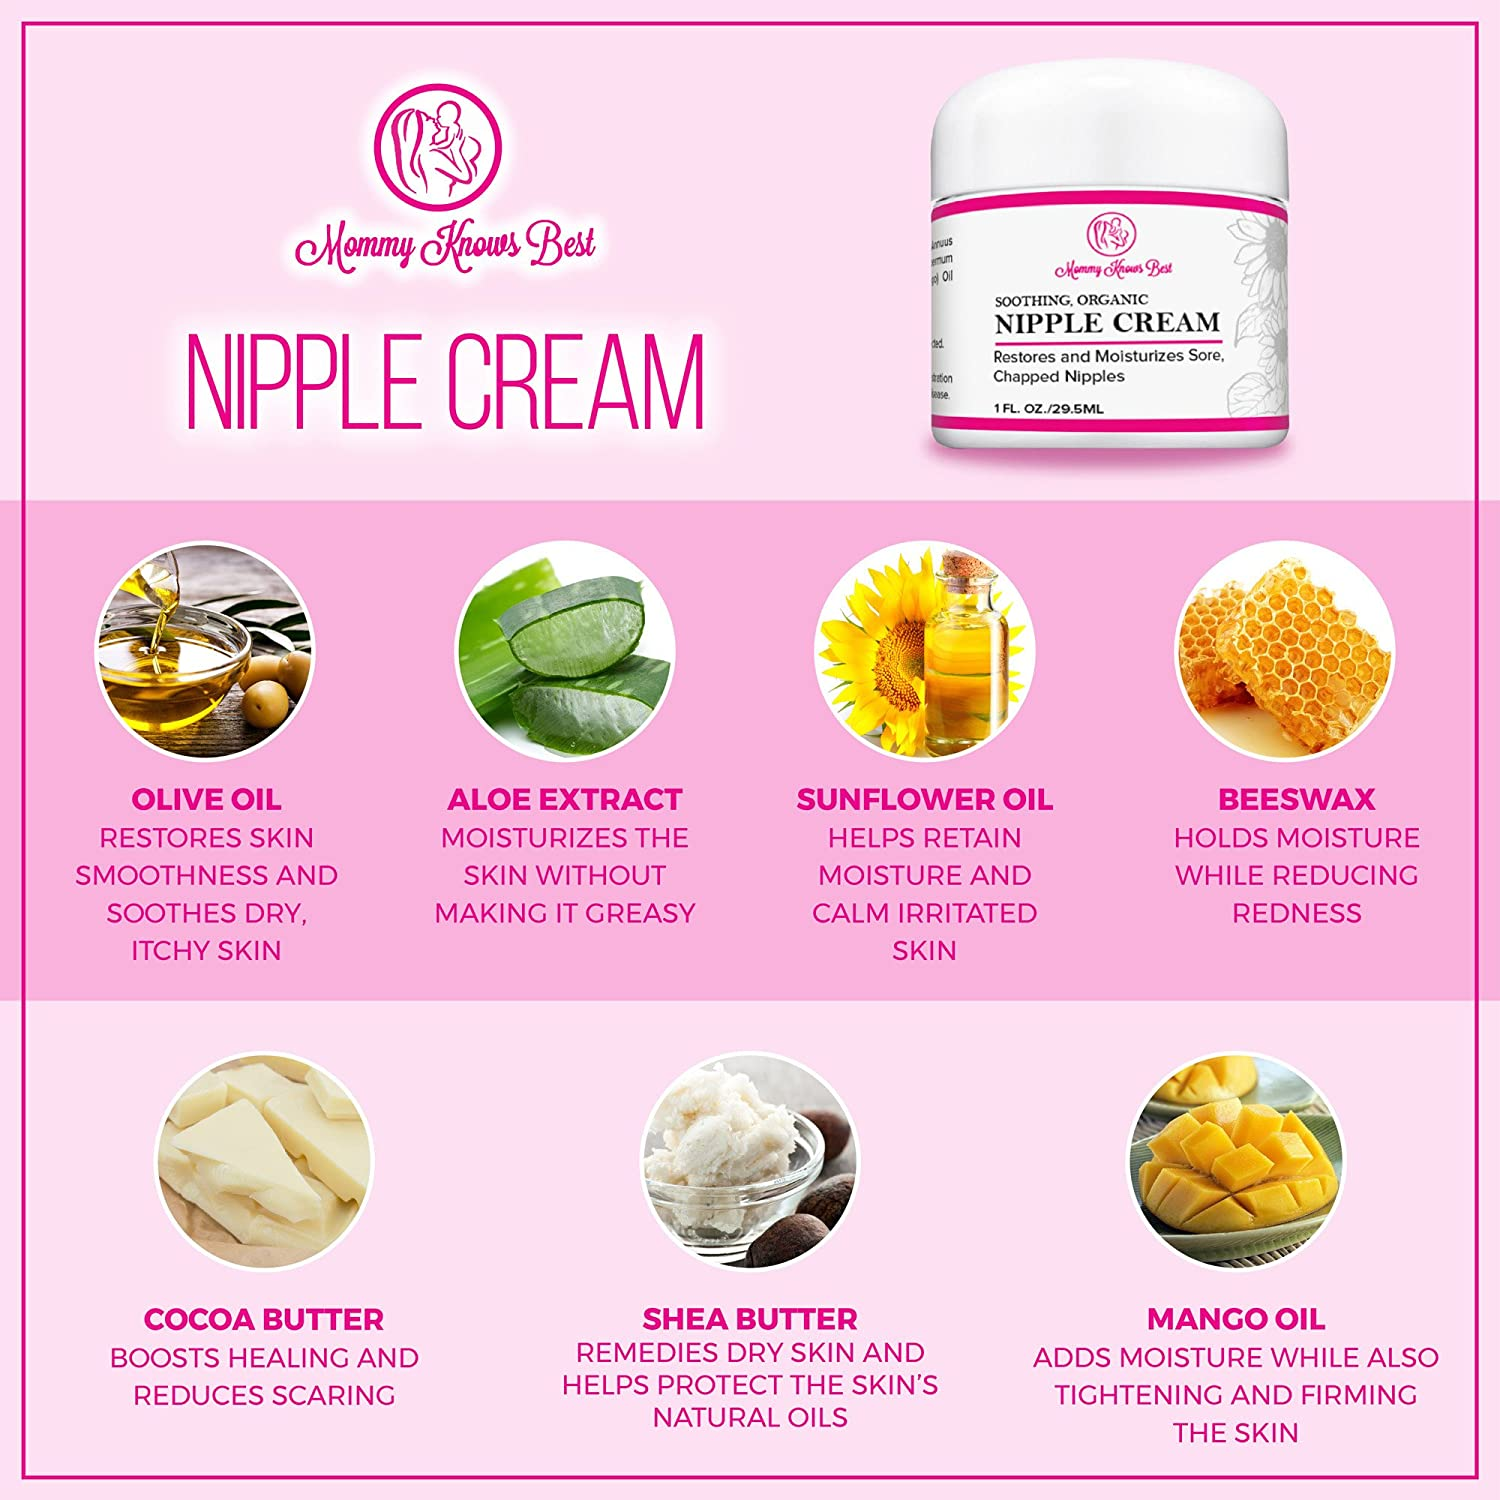 Amazon.com: Nipplecreams for Breastfeeding - Soothing All Natural Organic  Nipple Cream for Nursing Mothers - Restores and Moisturizes Sore, Chapped  Breasts ...